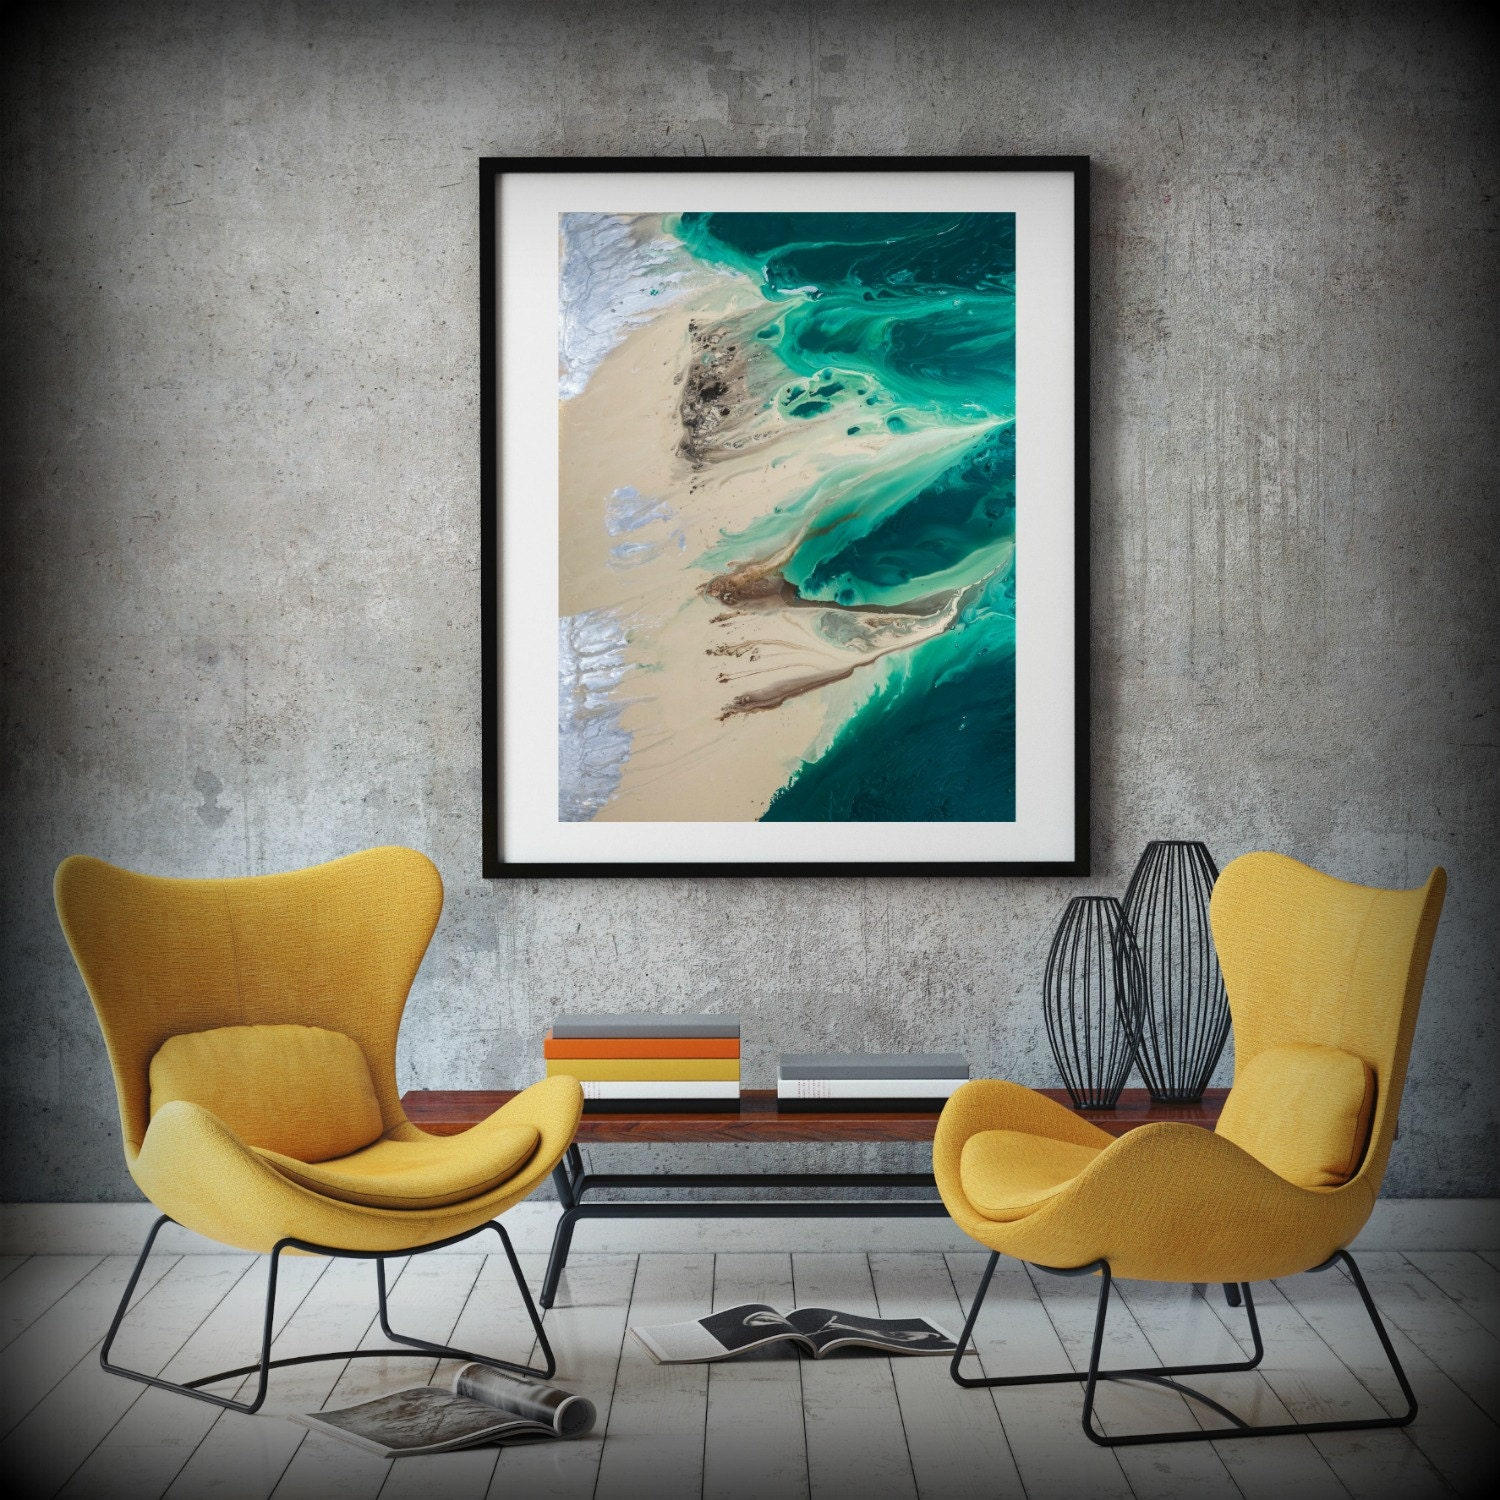 Coastal Art Print, Office Art Print Office Decor Abstract, Zen Painting  8x11 54x72 Huge Wall Art Living Room, Bedroom Art Green Painting